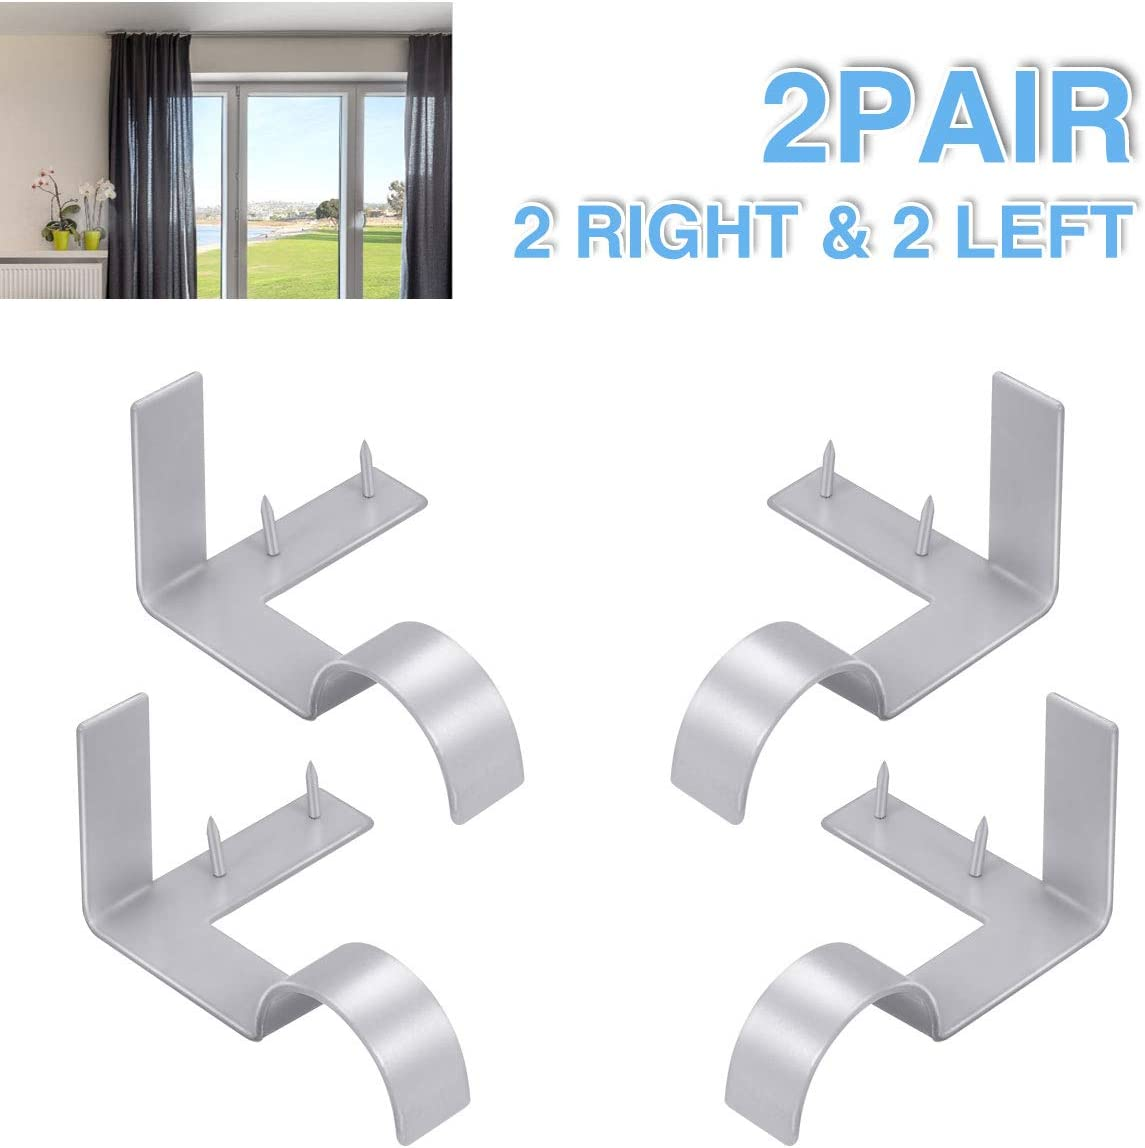 Single Curtain Rod Brackets - Silver, 2 pair 4 PCS Curtain Rod Holder Set, Decoration for supporting Single Rod Curtain in Bedroom & Home, tap in Window Frame (Include Fixed Screw free from Drilling)